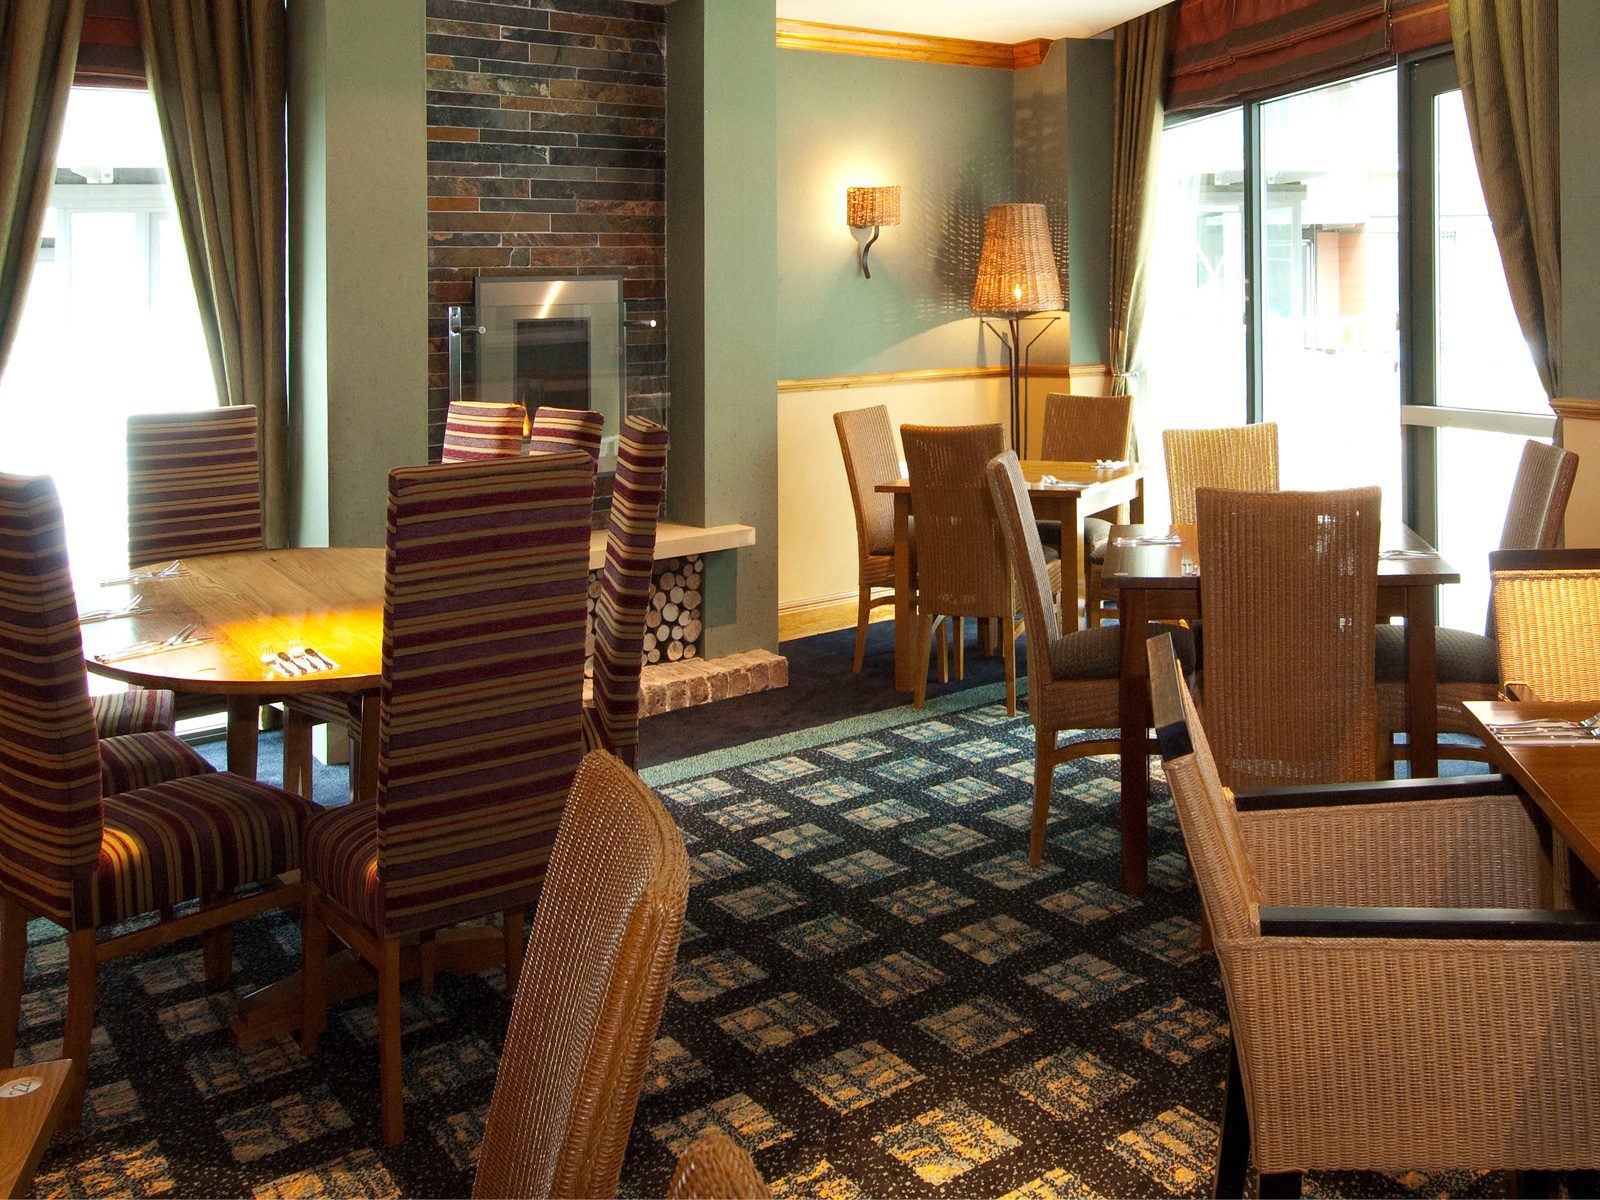 Beefeater Grill  - The Orchard - Evesham - Worcestershire